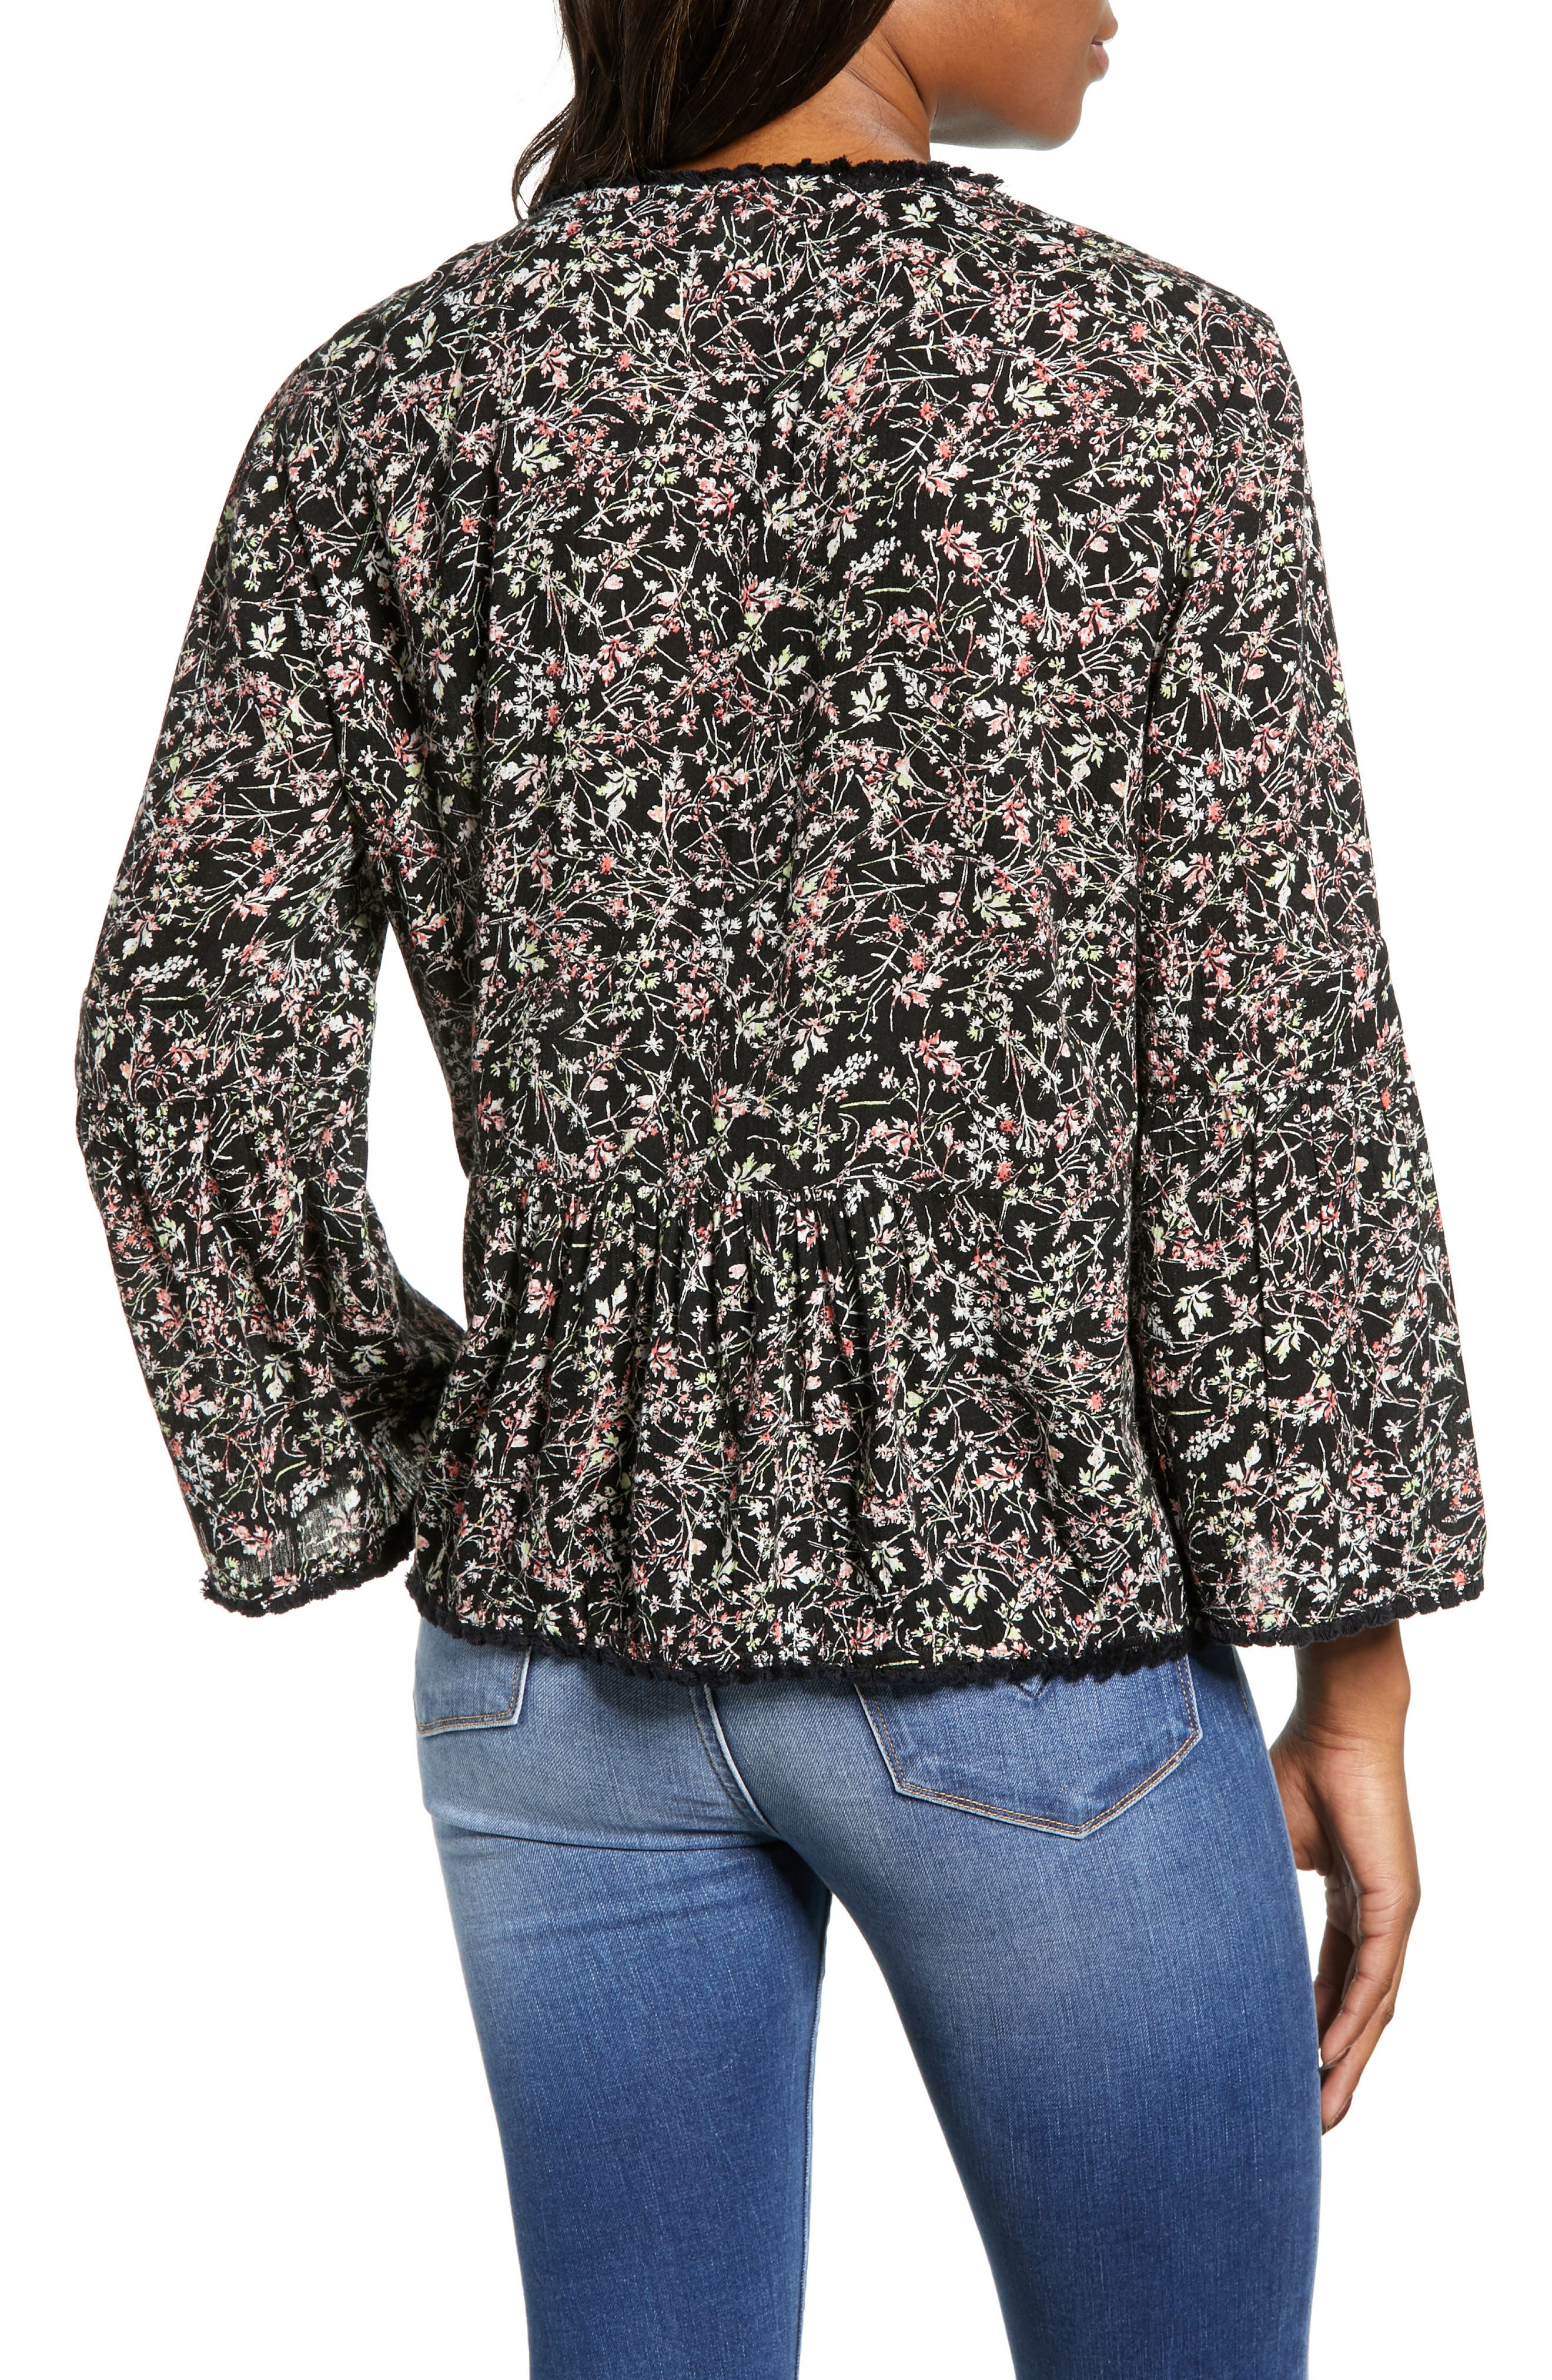 CASLON<SUP>®</SUP>, Print Fringe Trim Top, Alternate thumbnail 2, color, BLACK- GREEN NATURE FLORAL